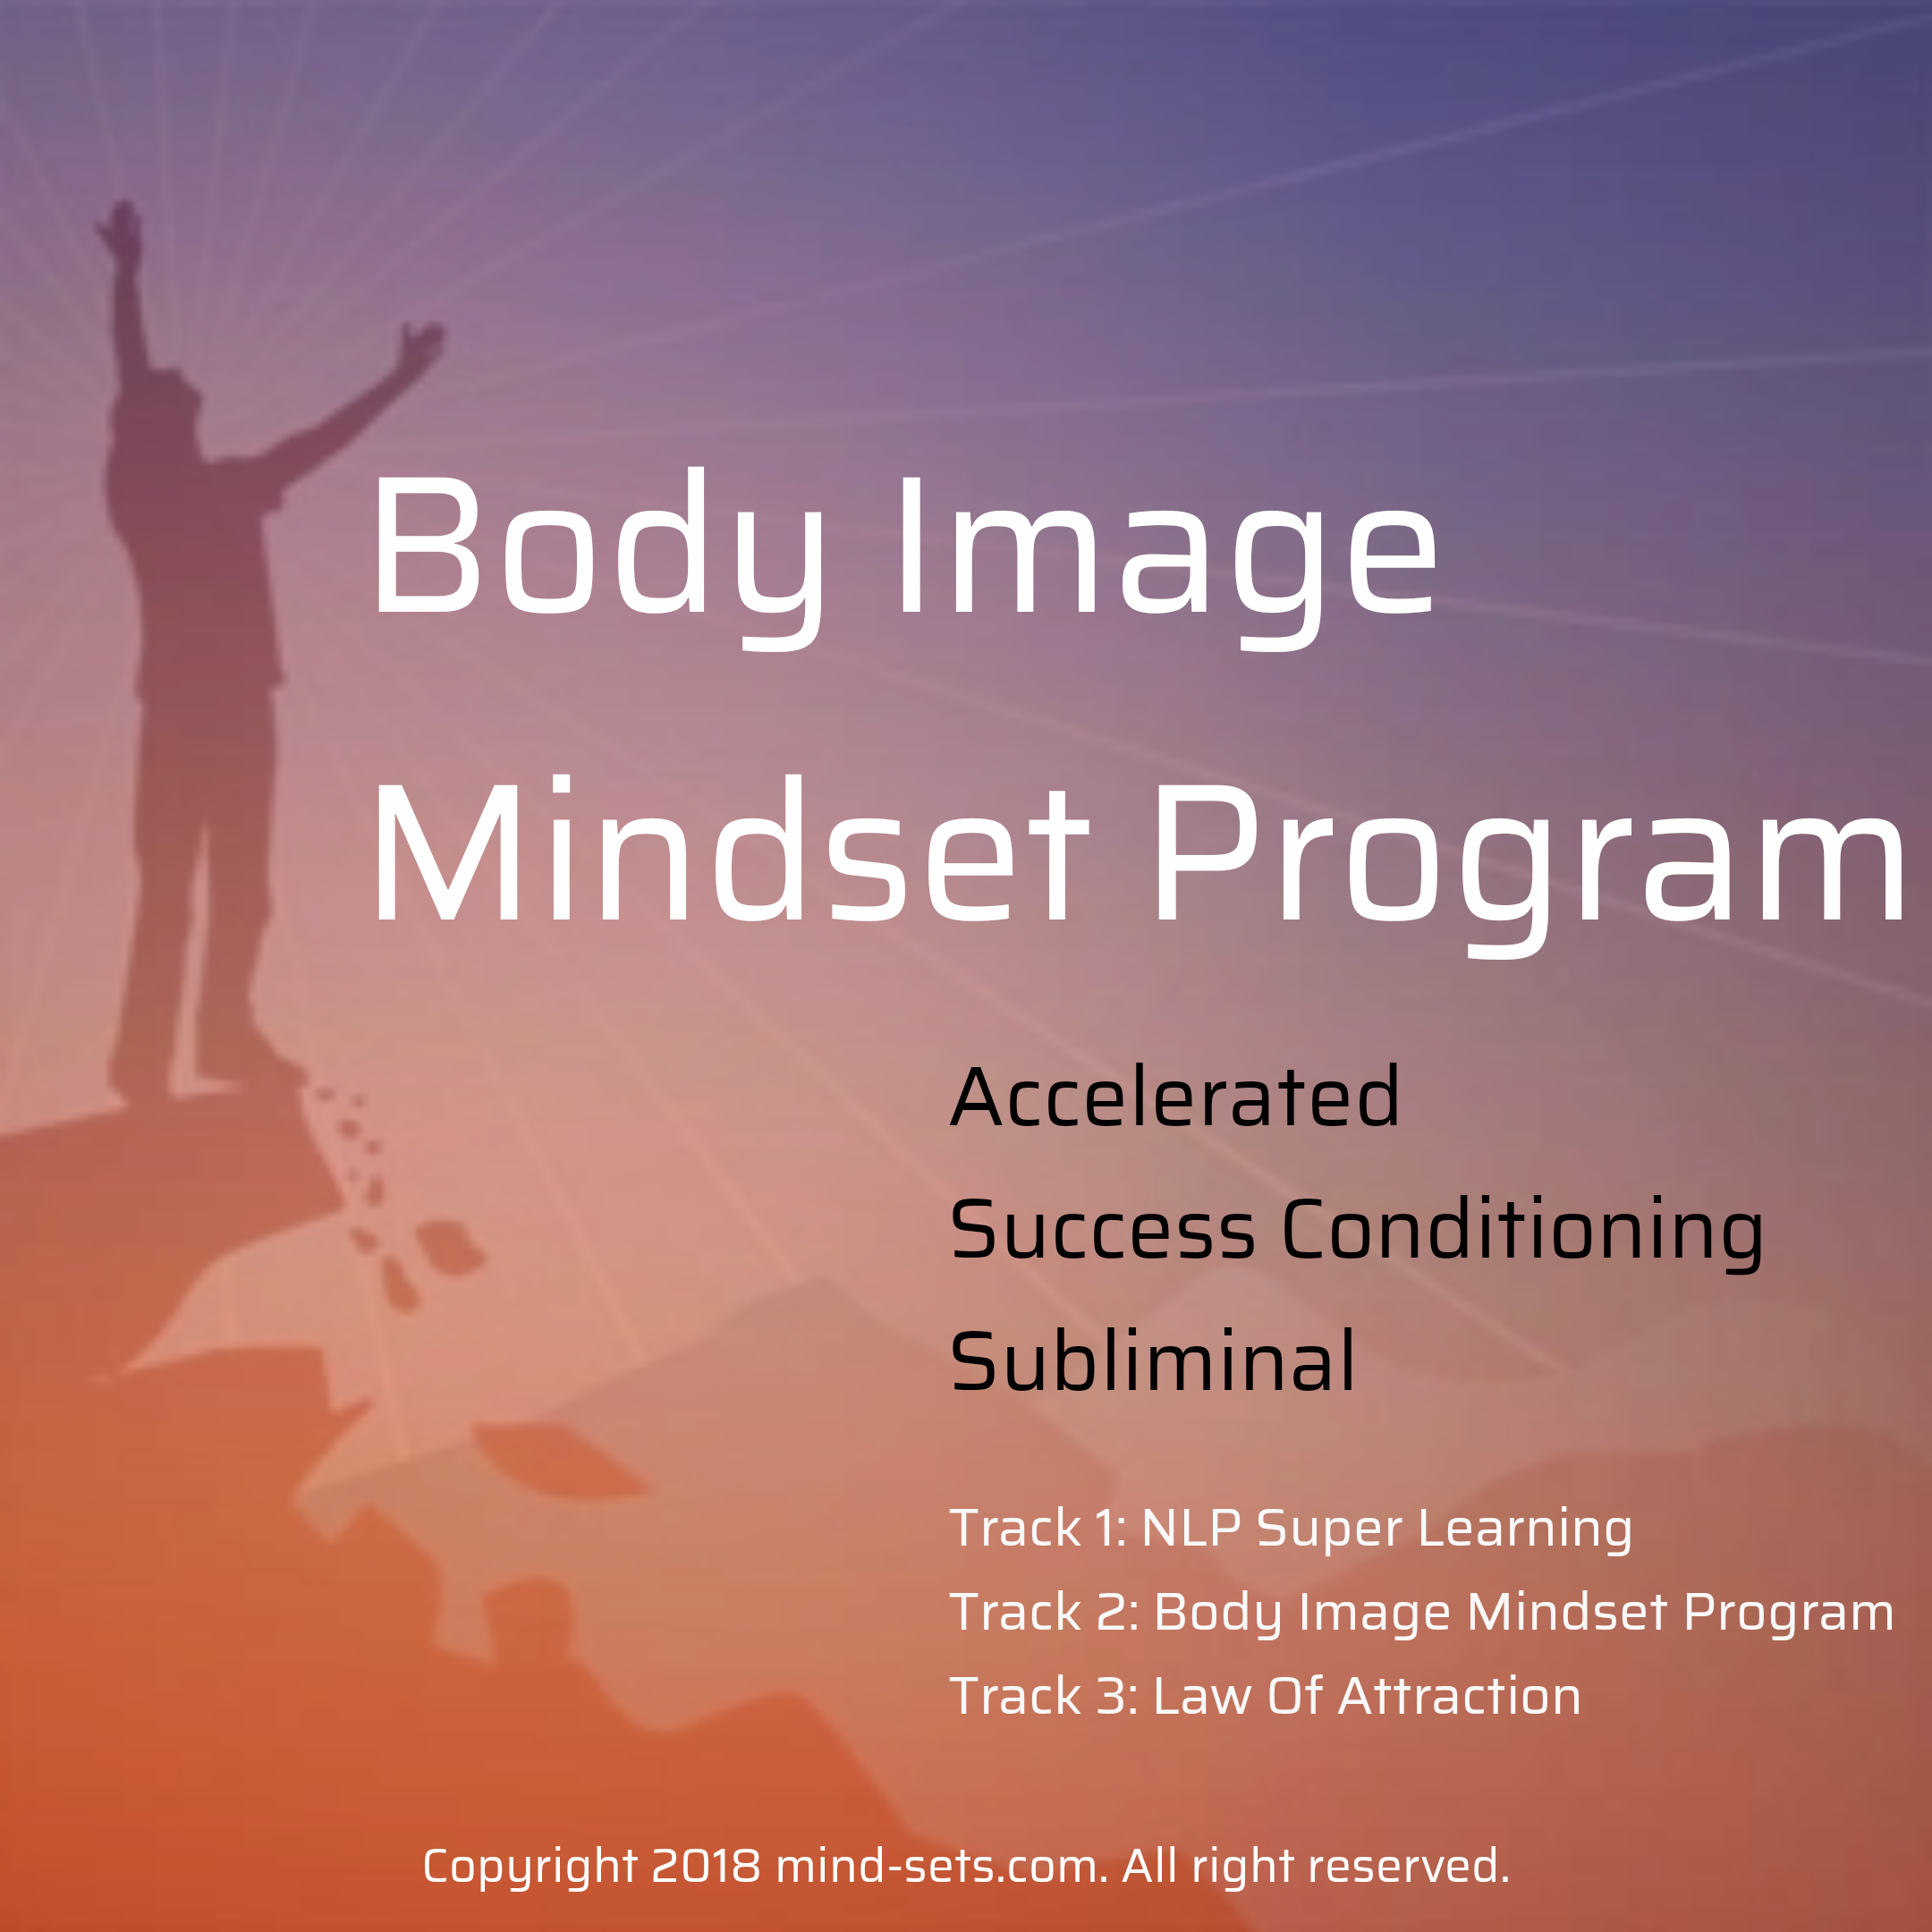 Body Image Mindset Program